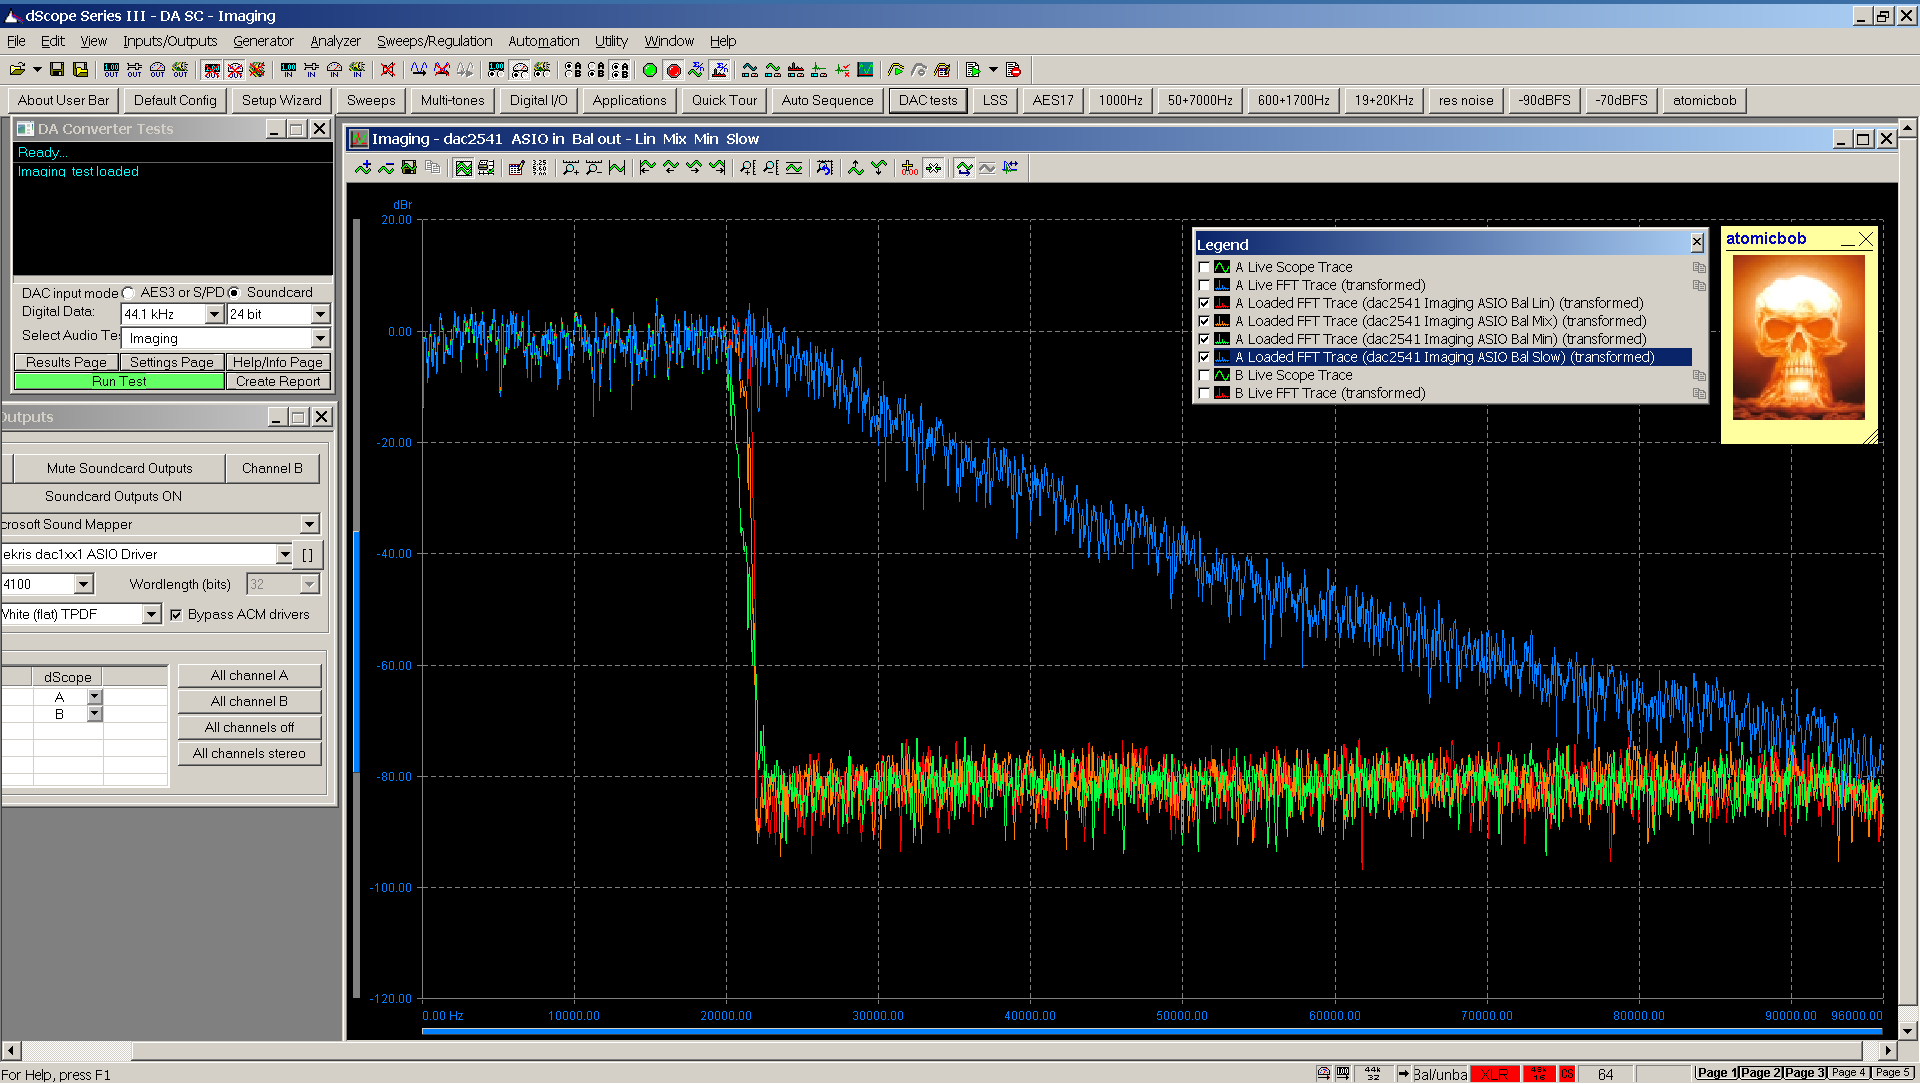 12 20210125 dac2541 imaging FFT ASIO Bal - 4 filters.png